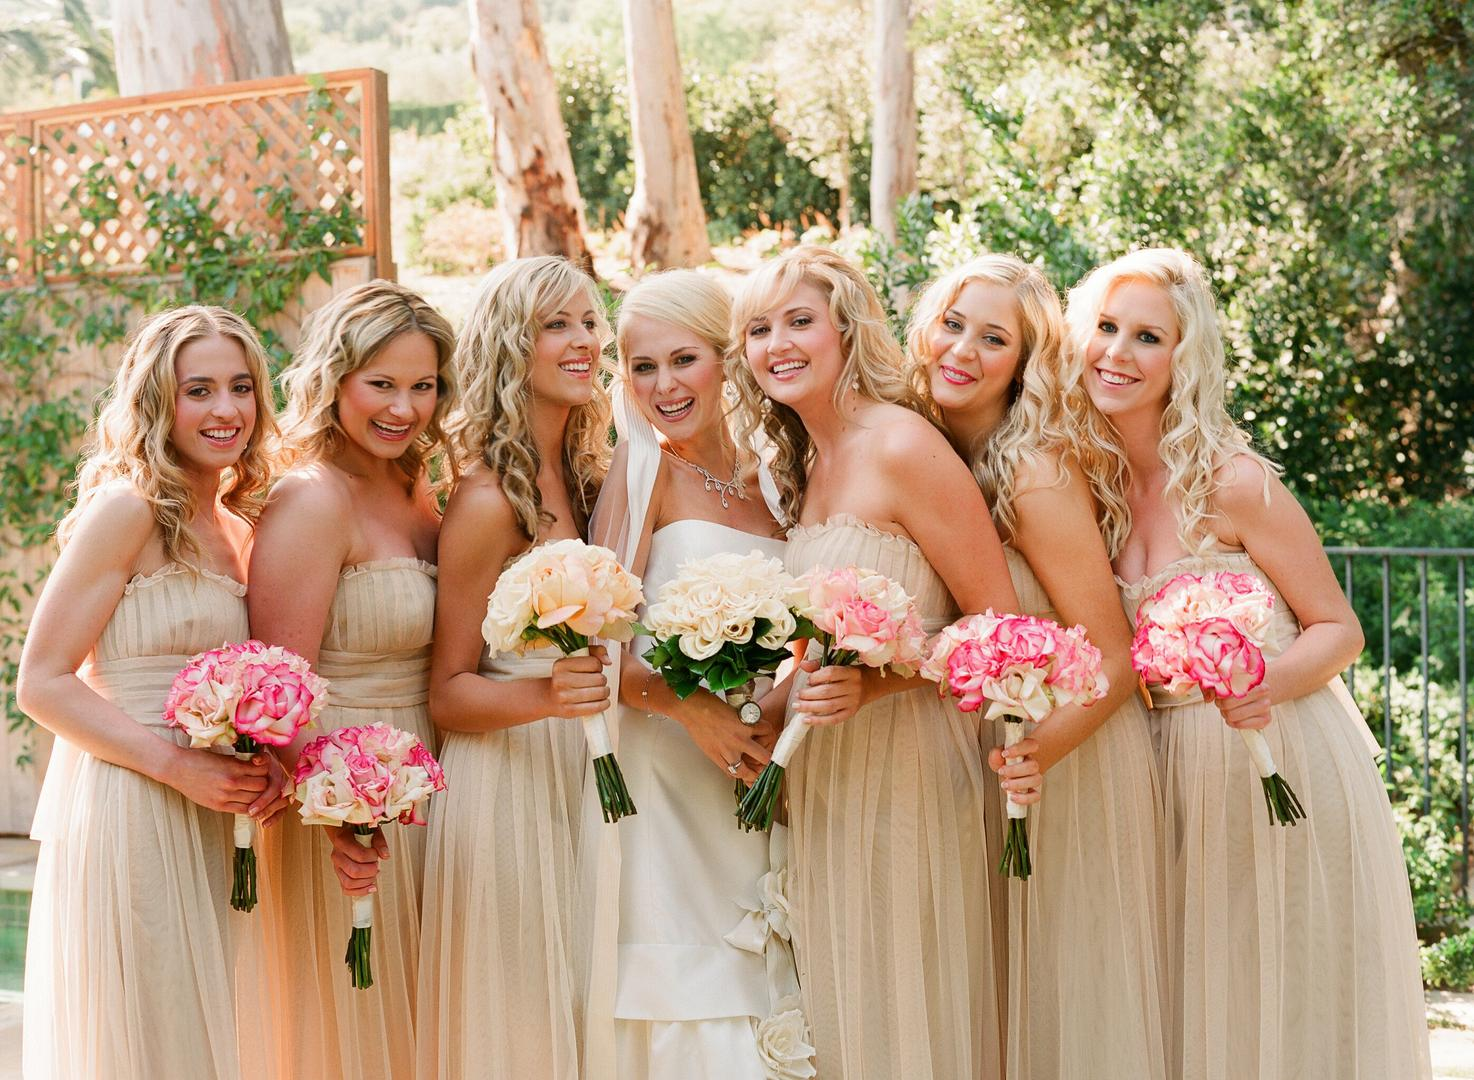 Charitable Bridesmaid Gifts Attendant Gifts Inside Weddings